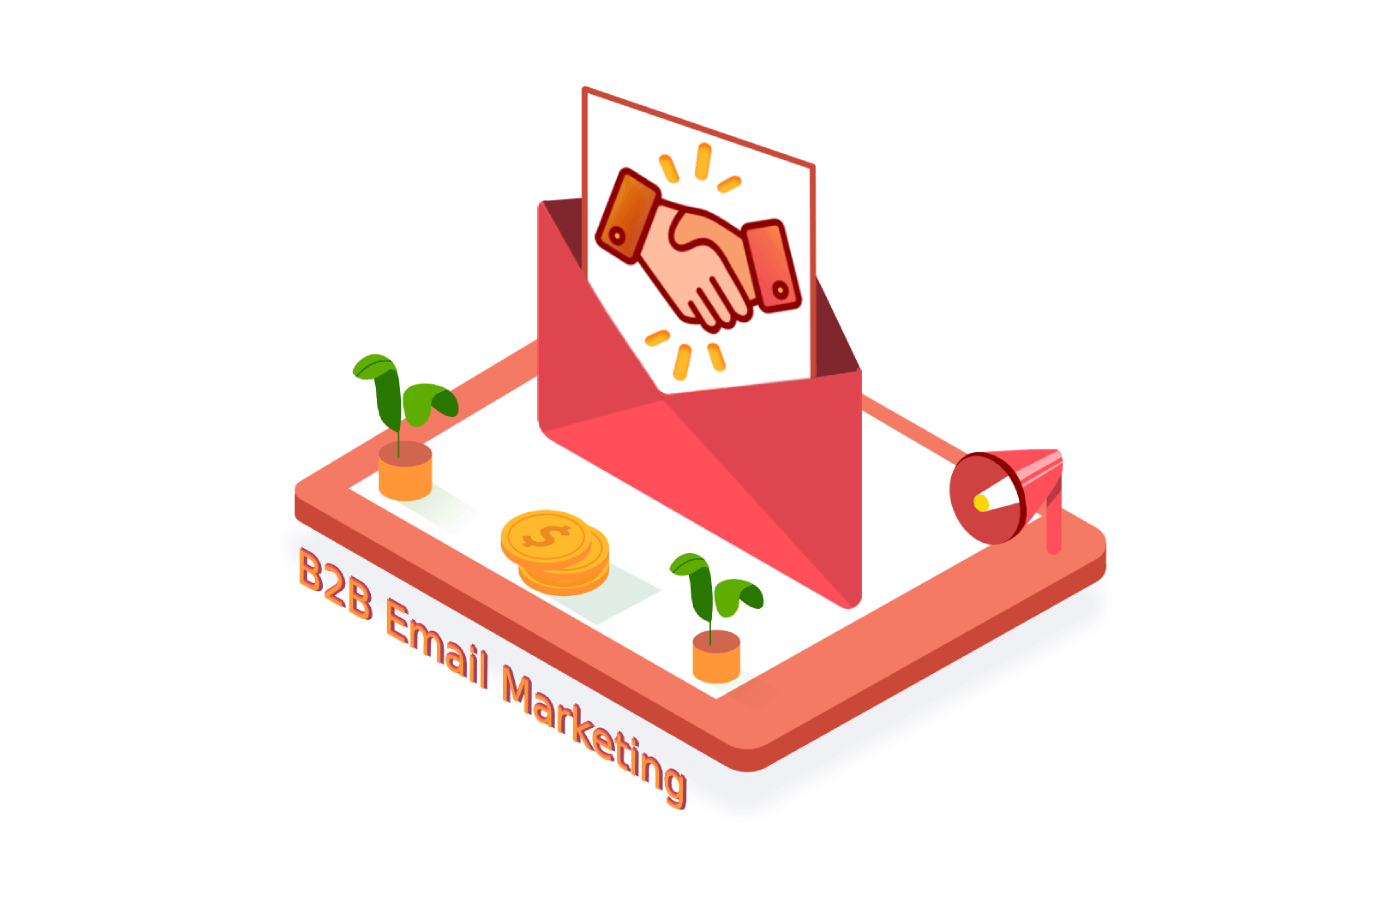 b2b_email_marketing_examples